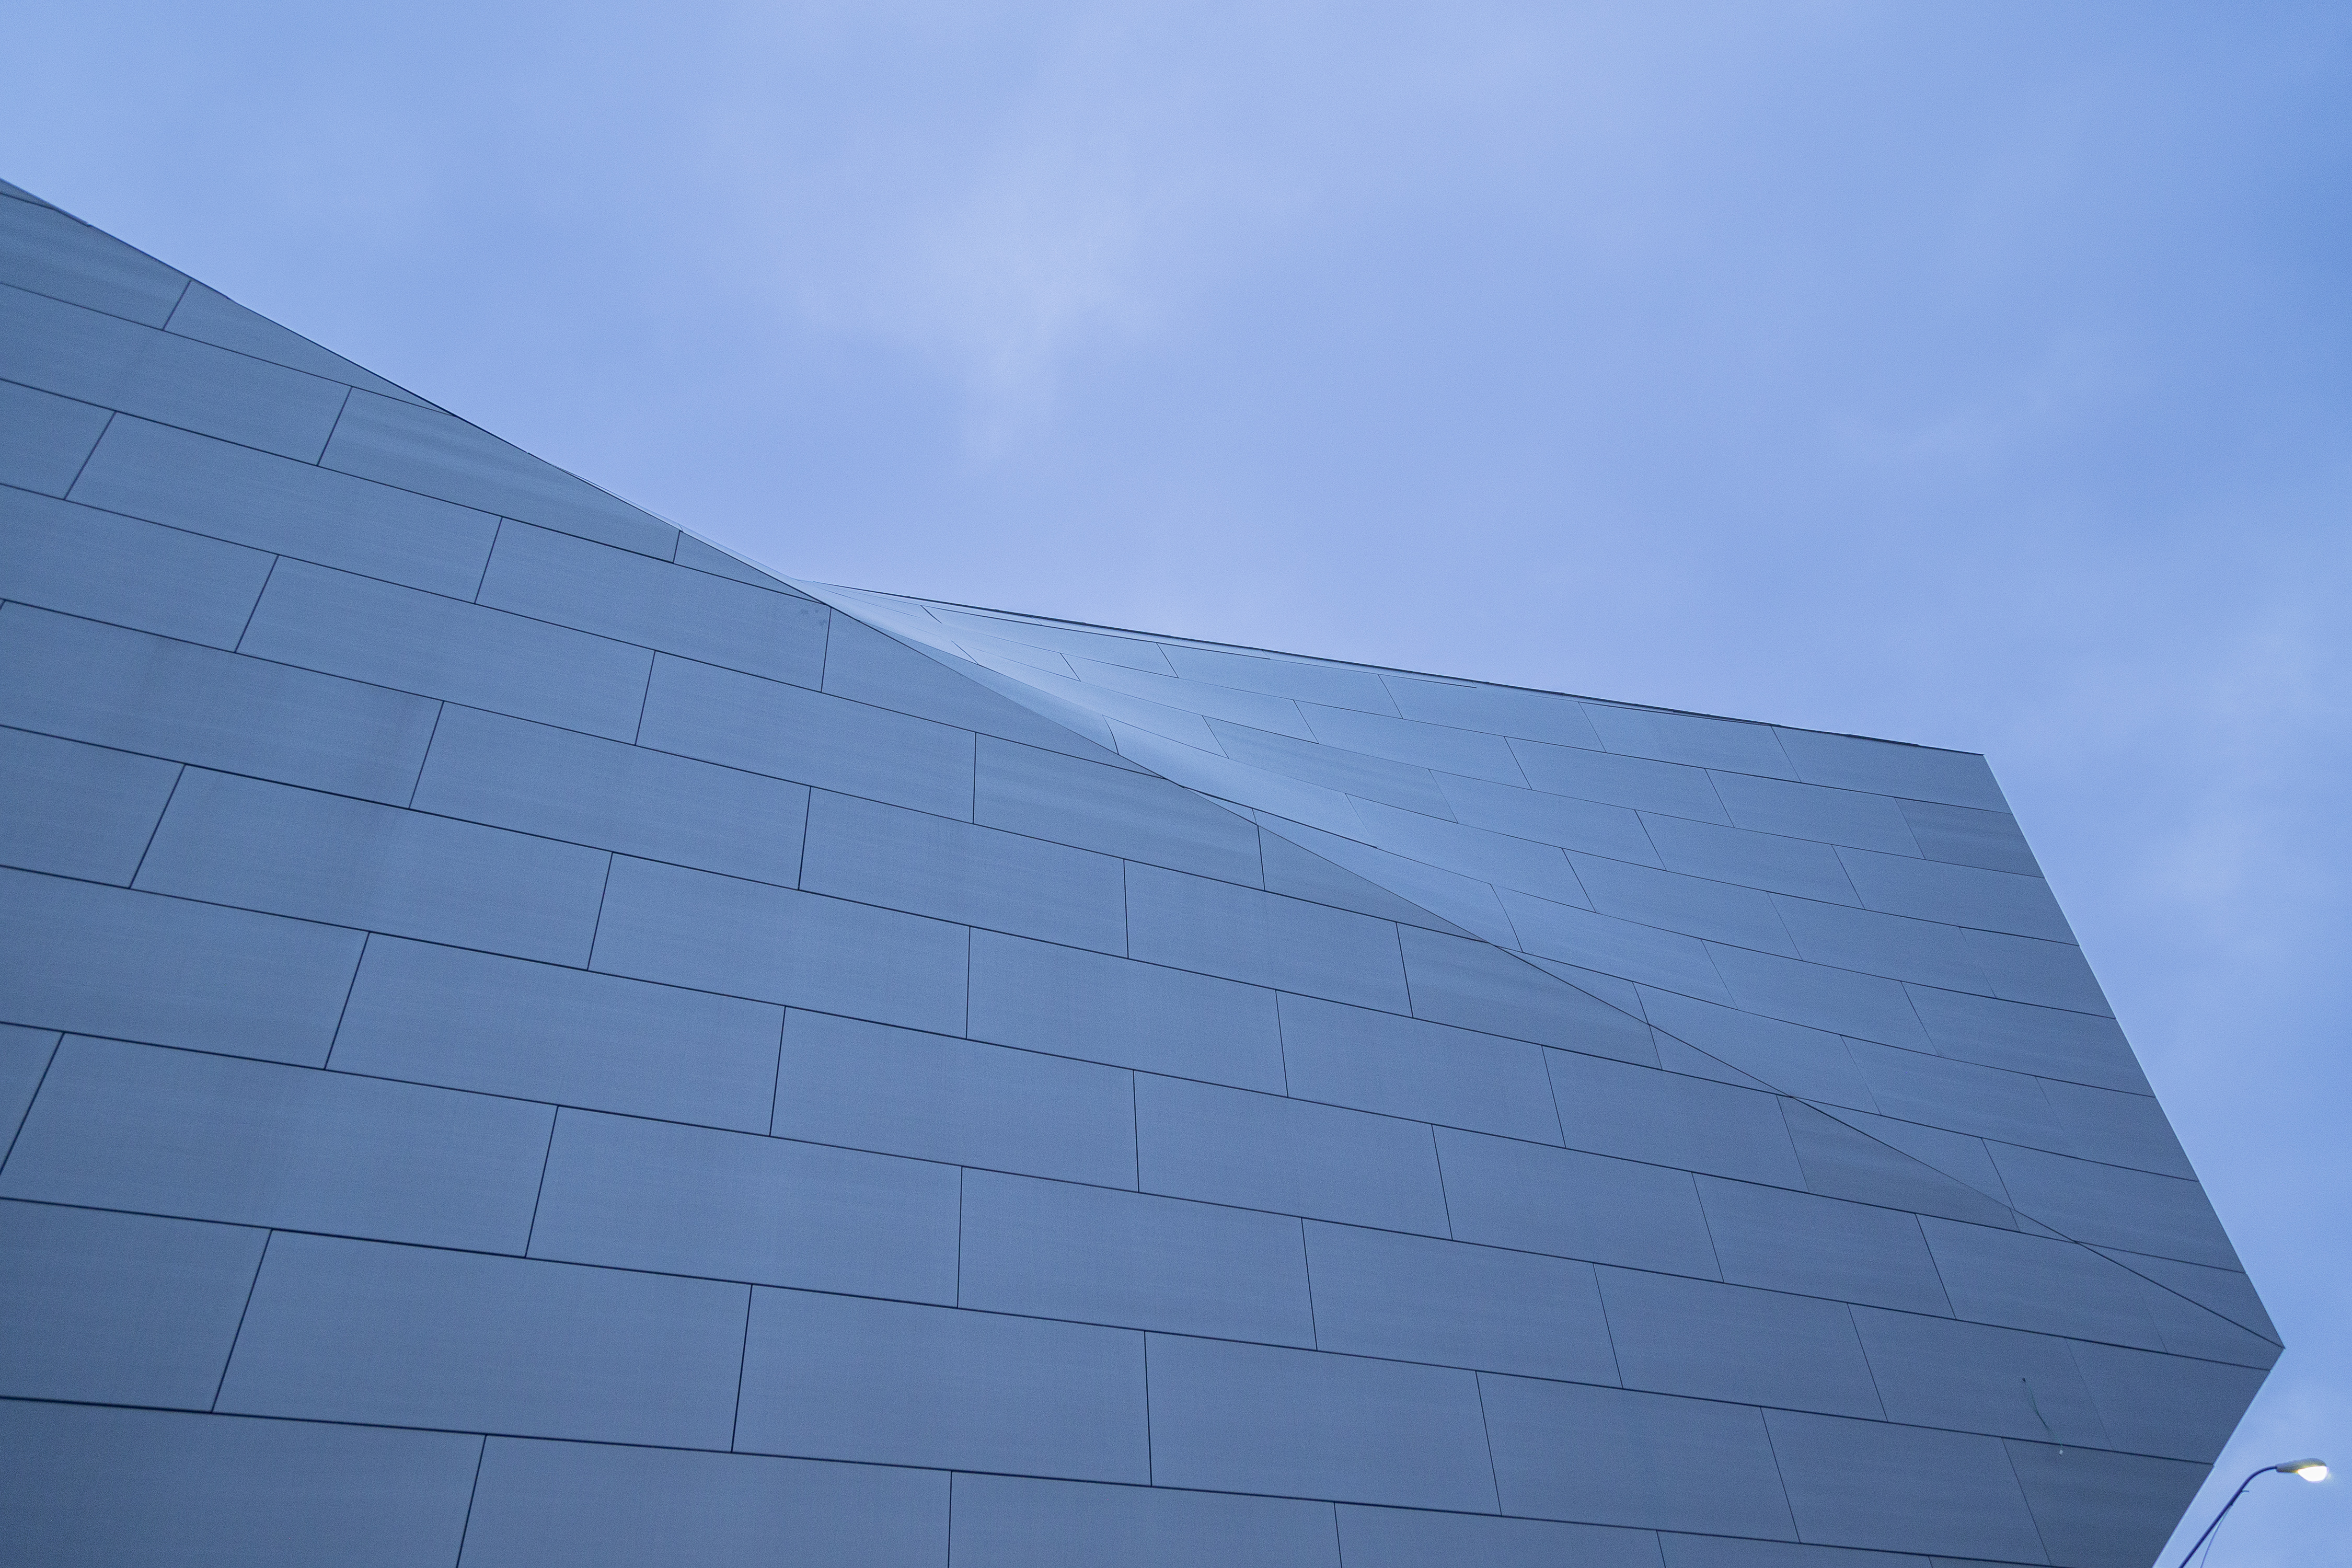 Zahner Internal Fin System (ZIFS) provided for complex geometry and zinc panel supports